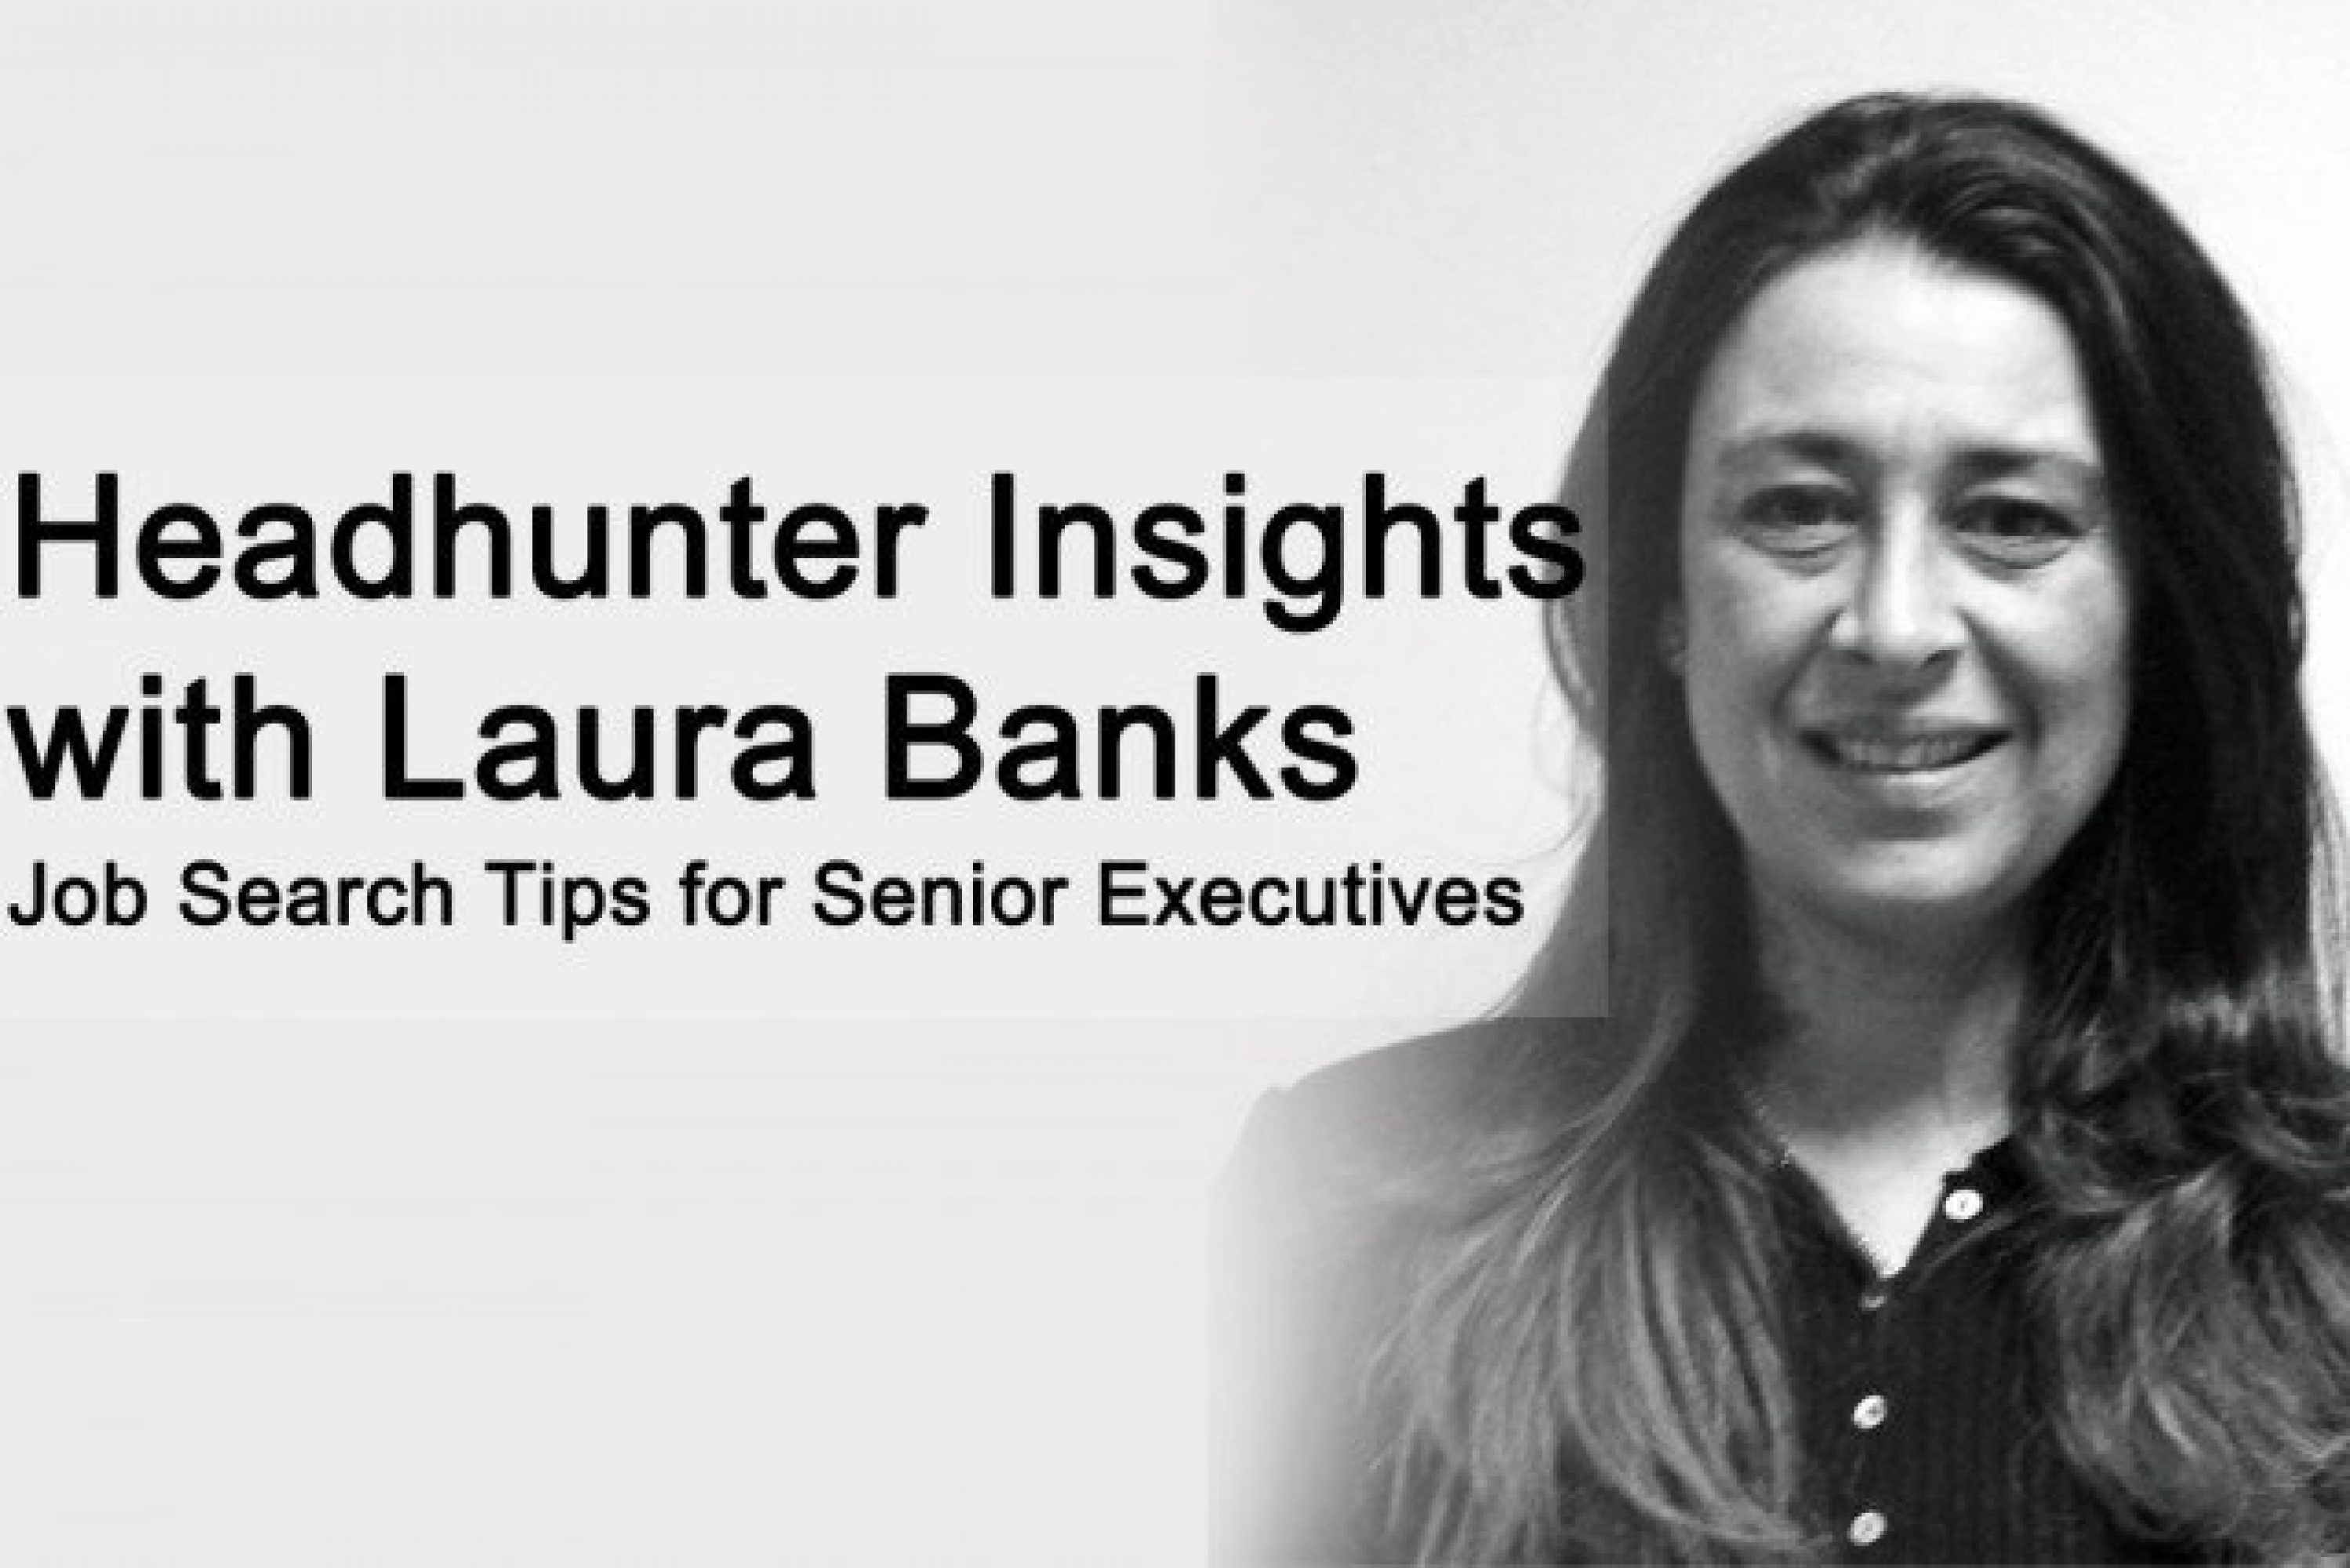 Executive Headhunter Insights with Laura Banks Job Search Tips for Senior Executives